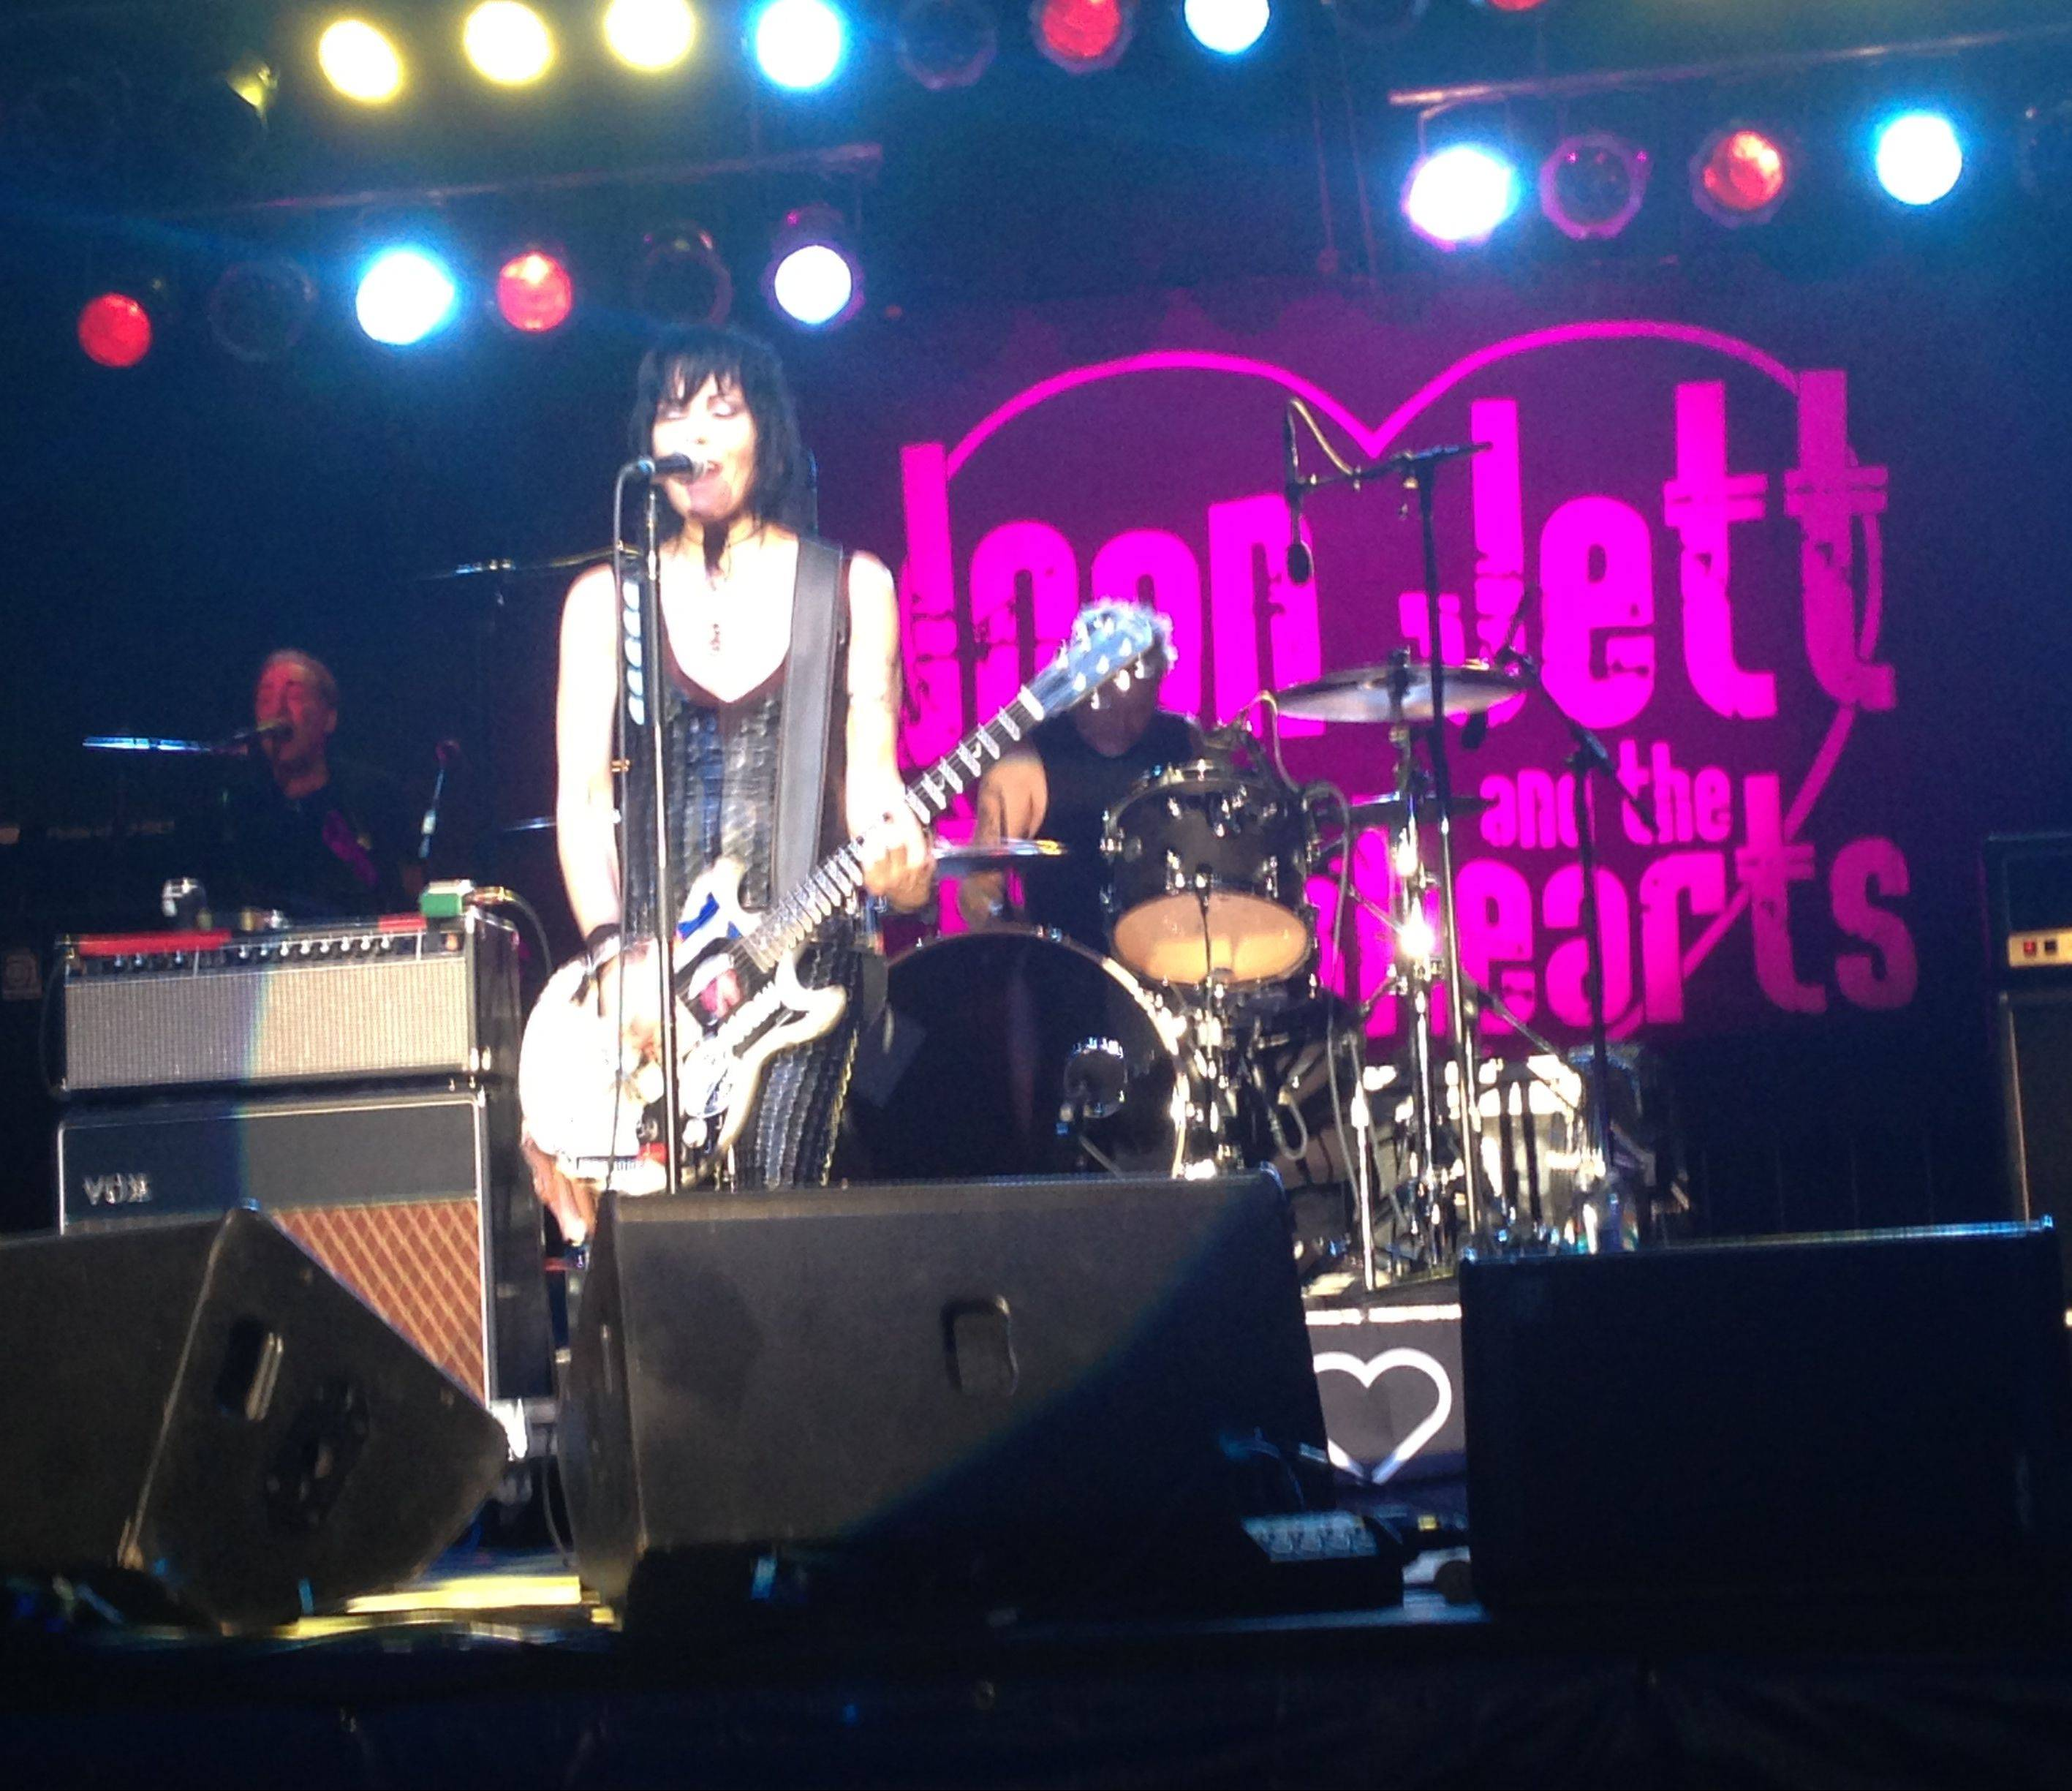 The Grand Victoria Casino is partnering with Onesti Entertainment and the city of Elgin to hold a concert series at Festival Park in downtown Elgin. The first on Aug. 24 featured Joan Jett and the Blackhearts, along with Eric Burdon & The Animals.